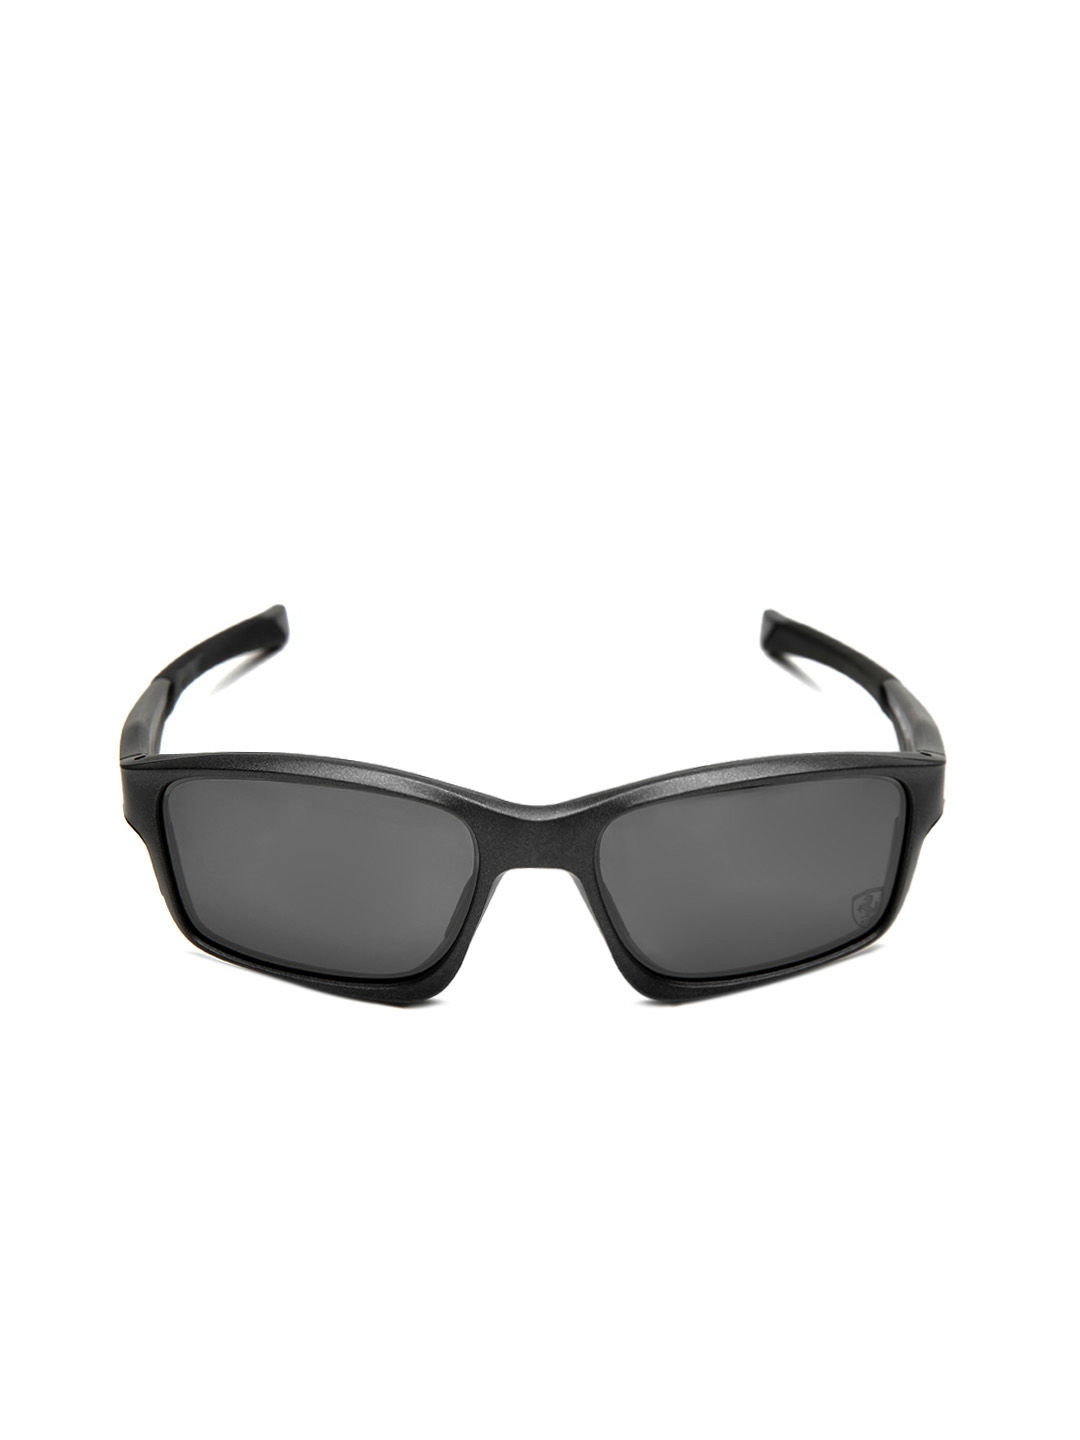 best price for oakley sunglasses iyeh  best price for oakley sunglasses